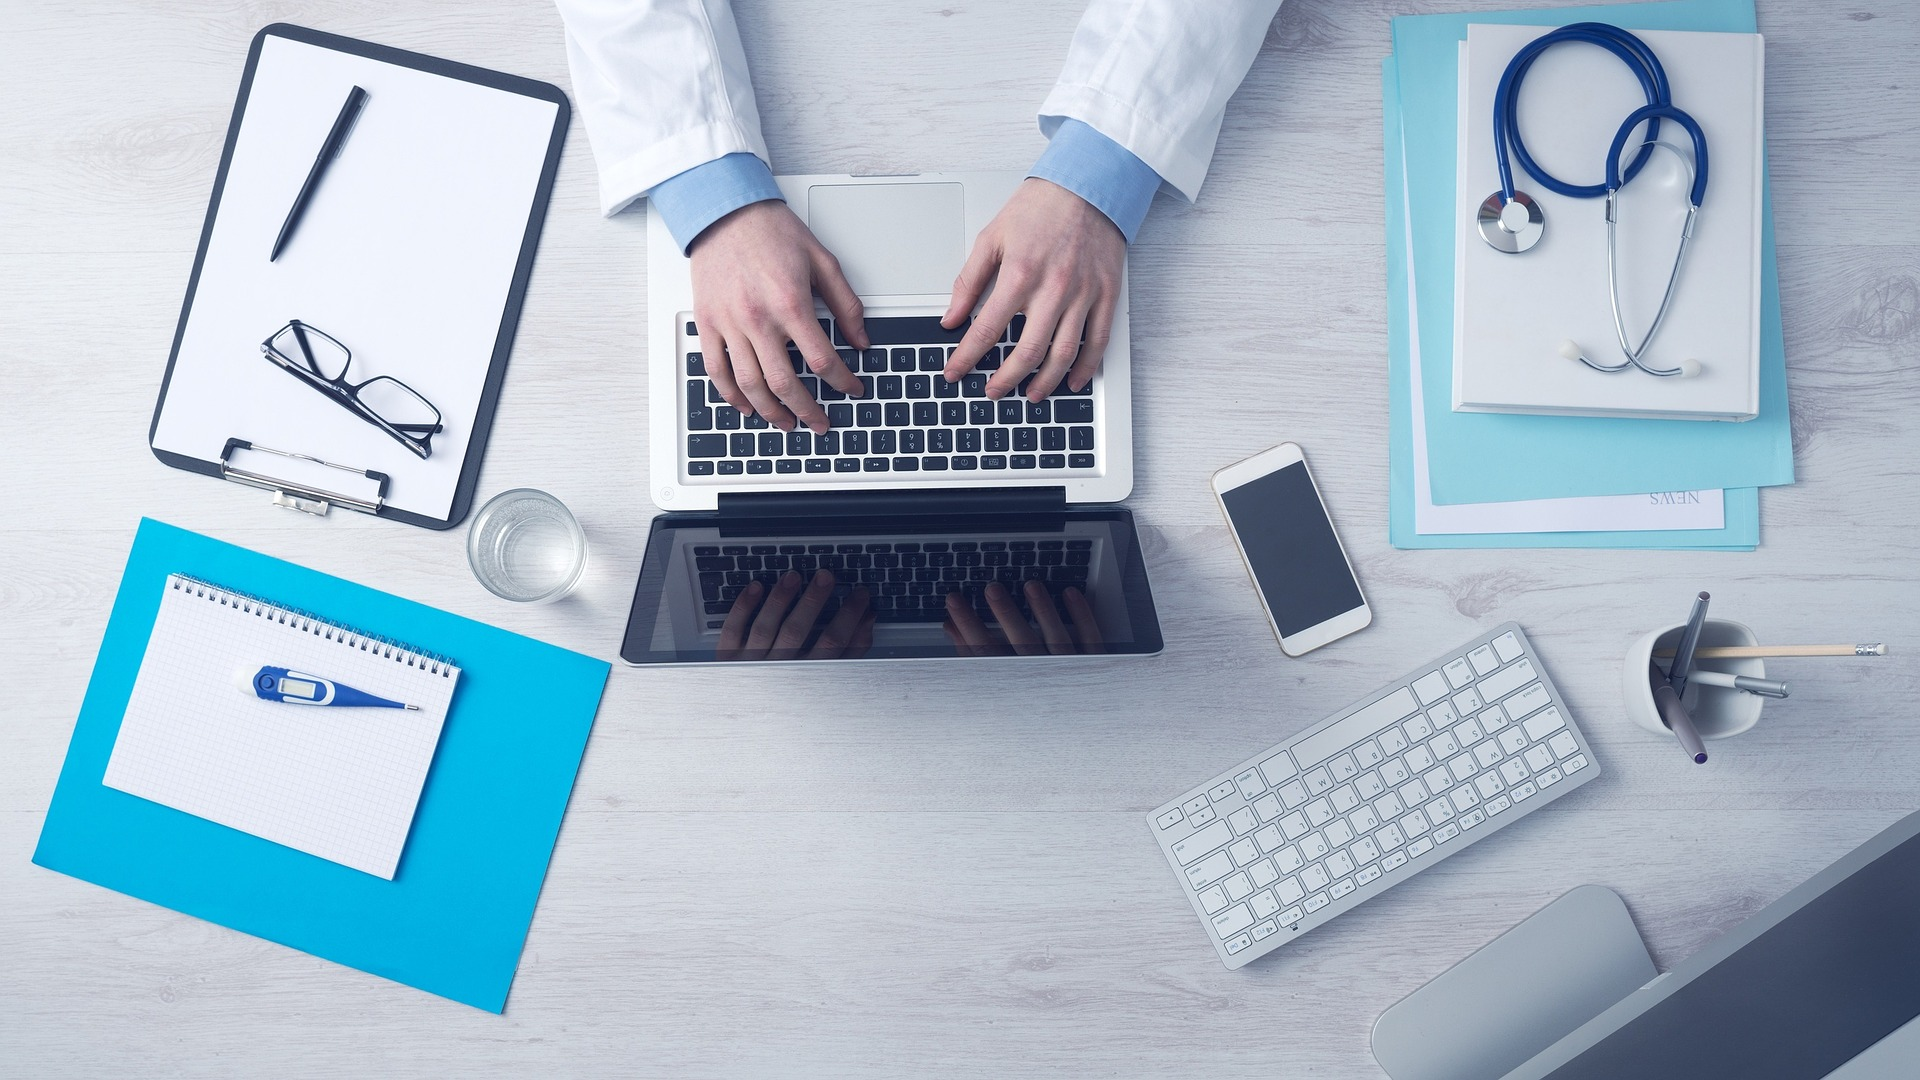 https://www.helpnetsecurity.com/2016/06/21/healthcare-needs-data-centric-security-approach/